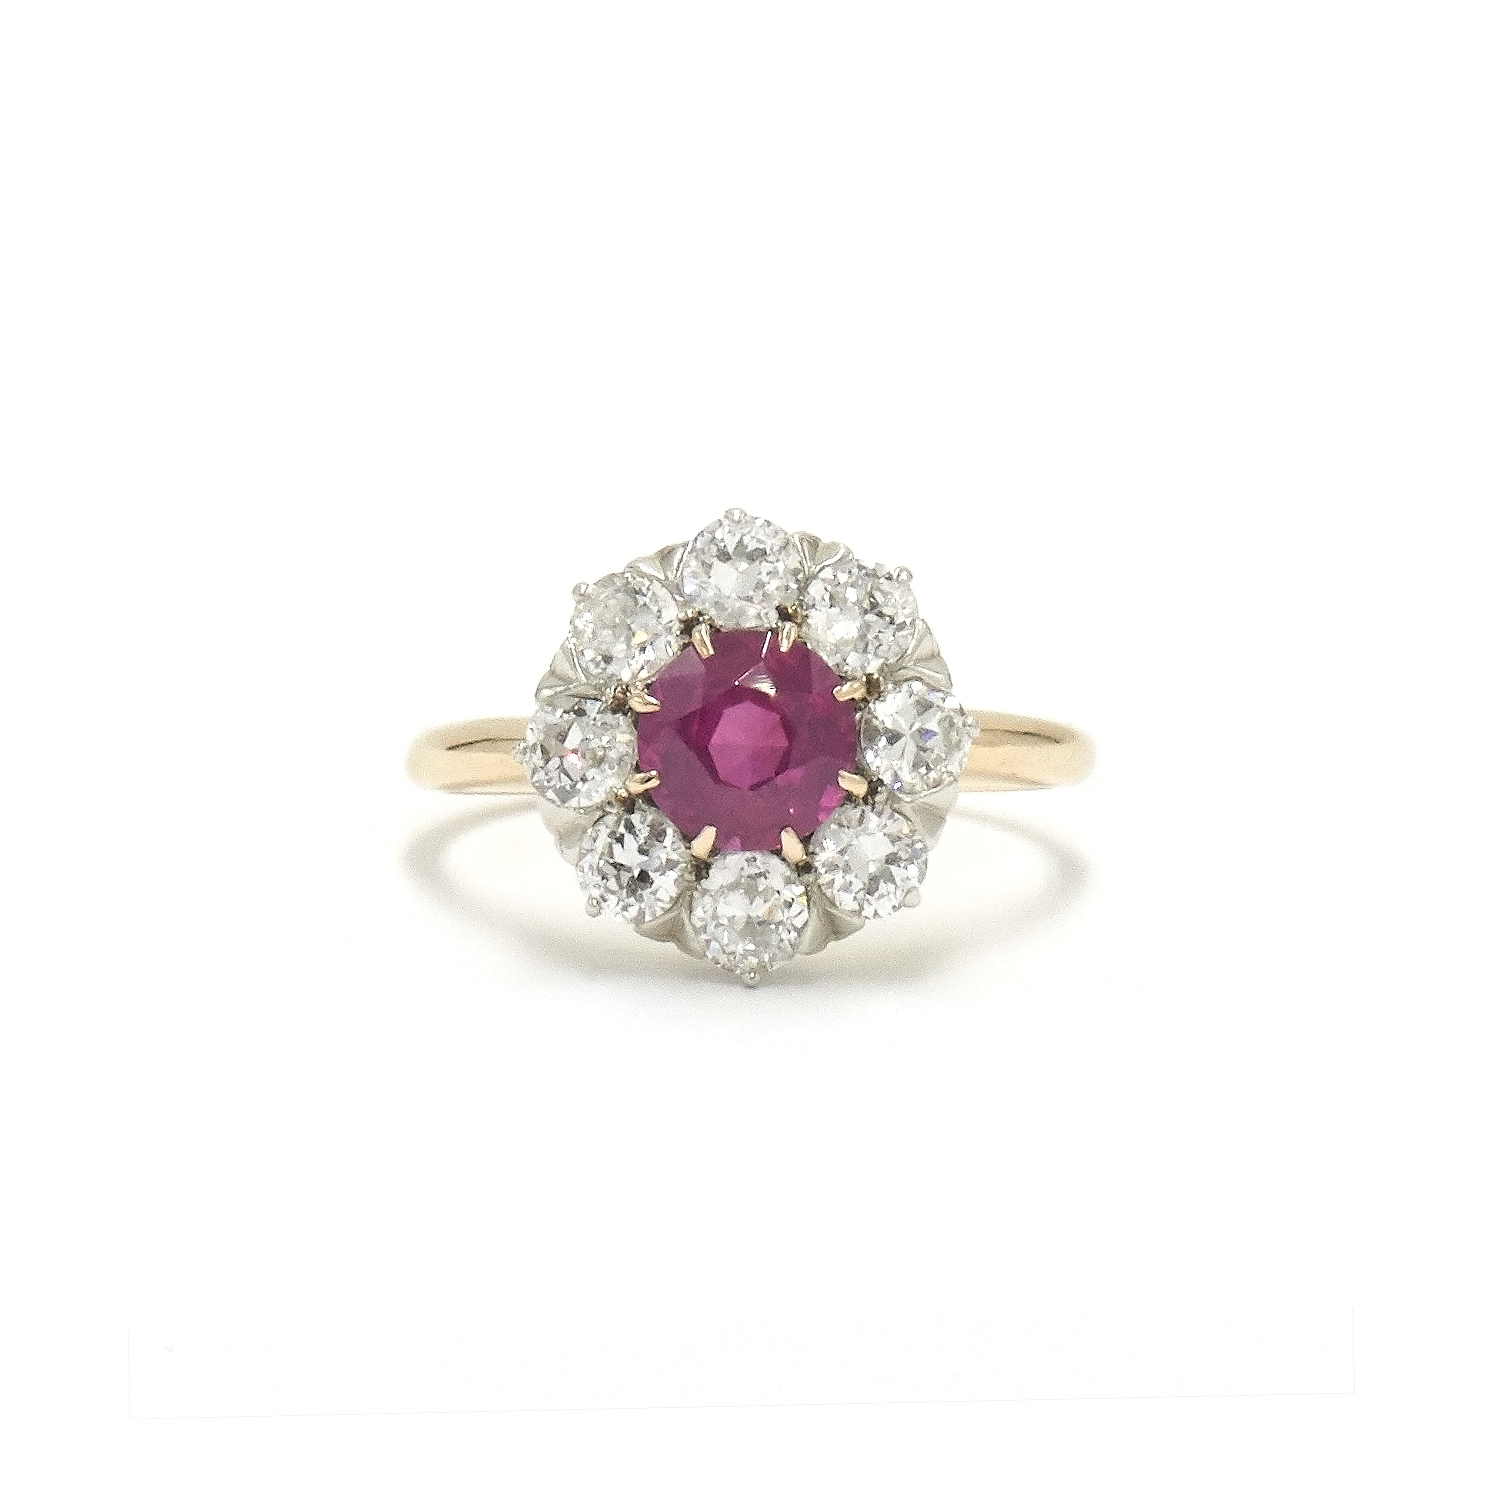 Antique Ruby and Diamond Cluster Ring Style F-29137-FL-0-0